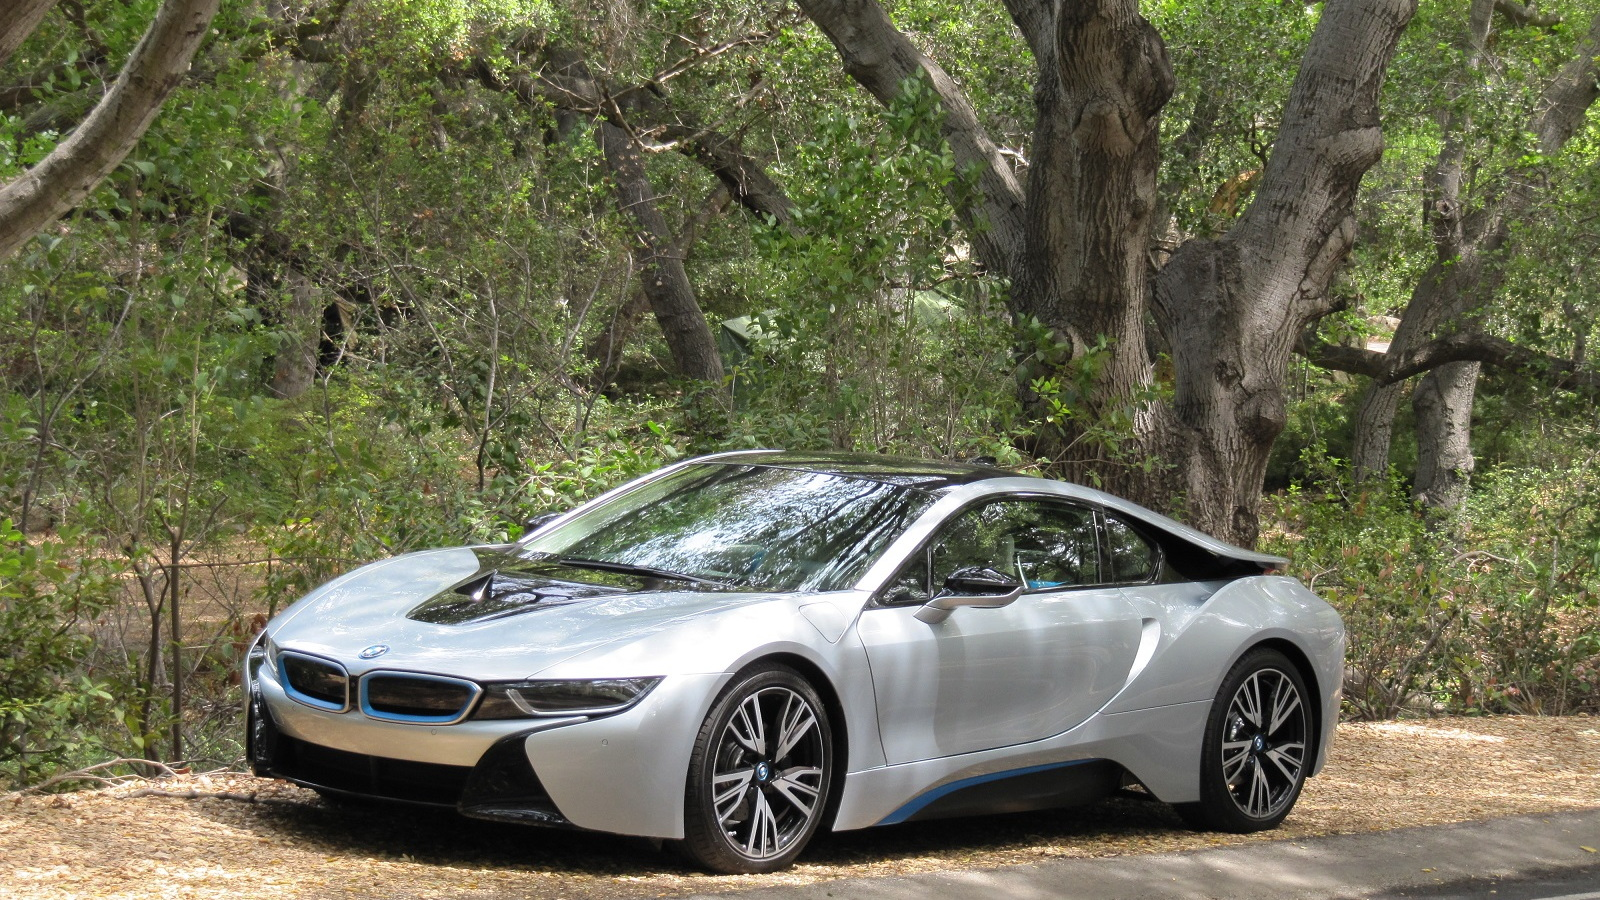 2015 BMW i8, test drive around Malibu, CA,